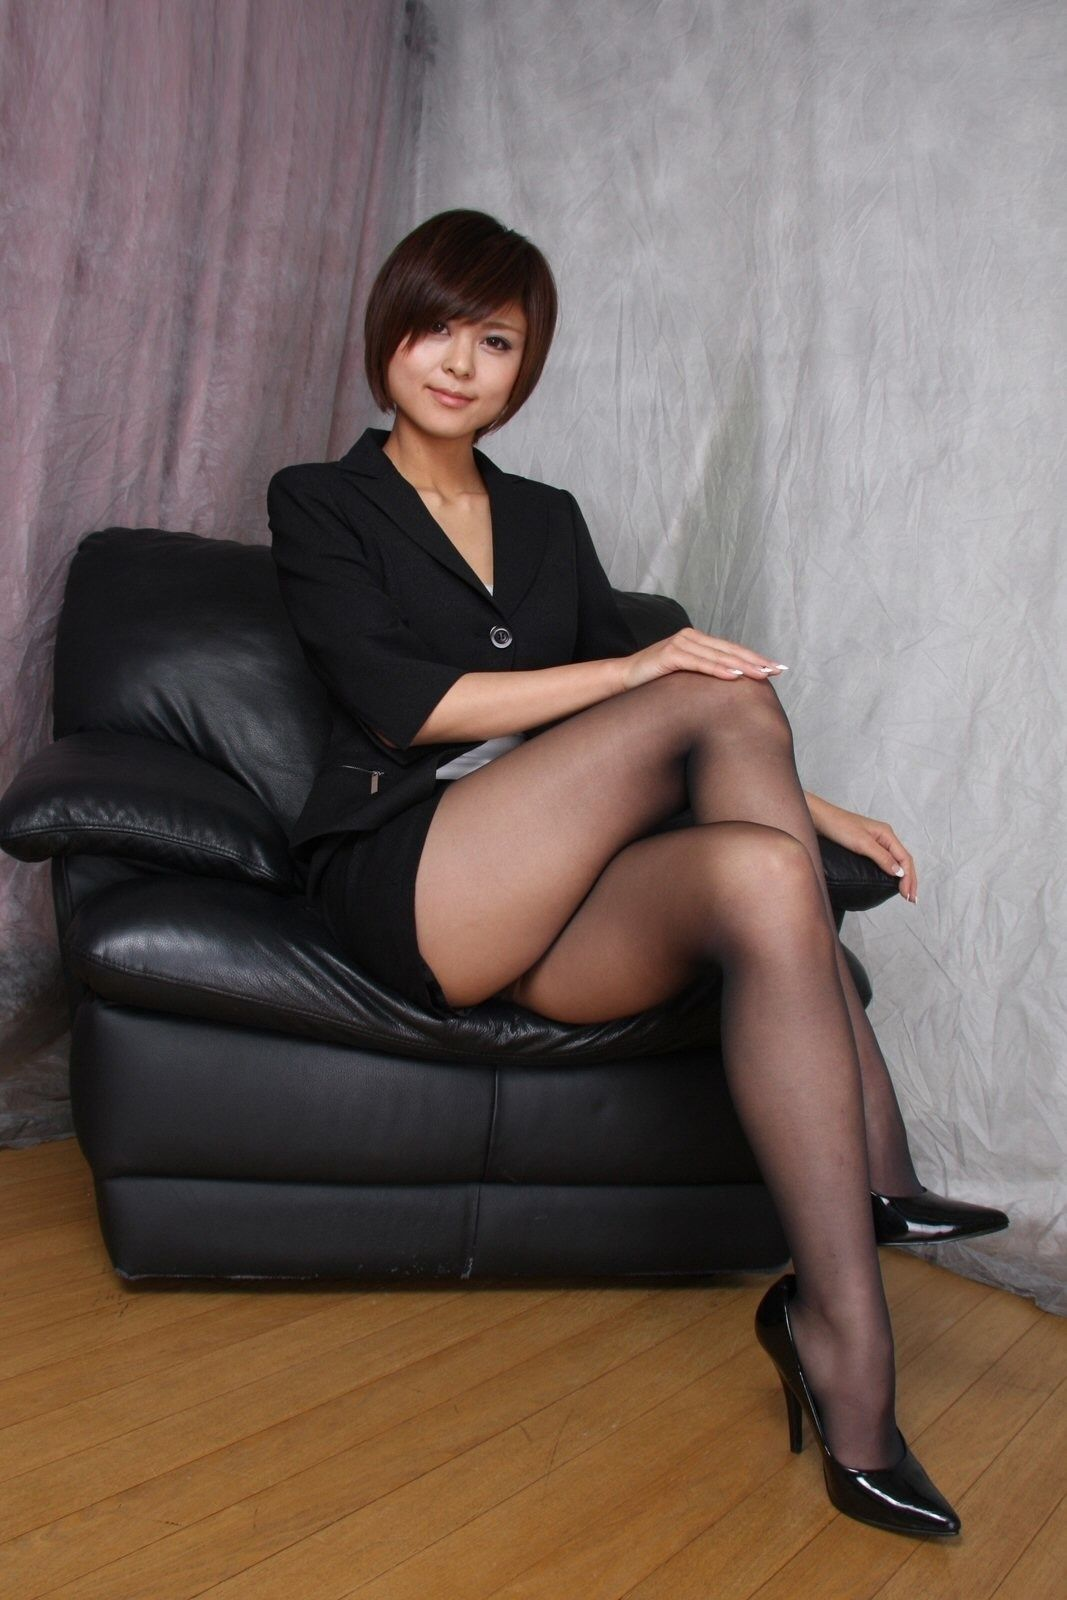 Sexy asian girl stockings legs